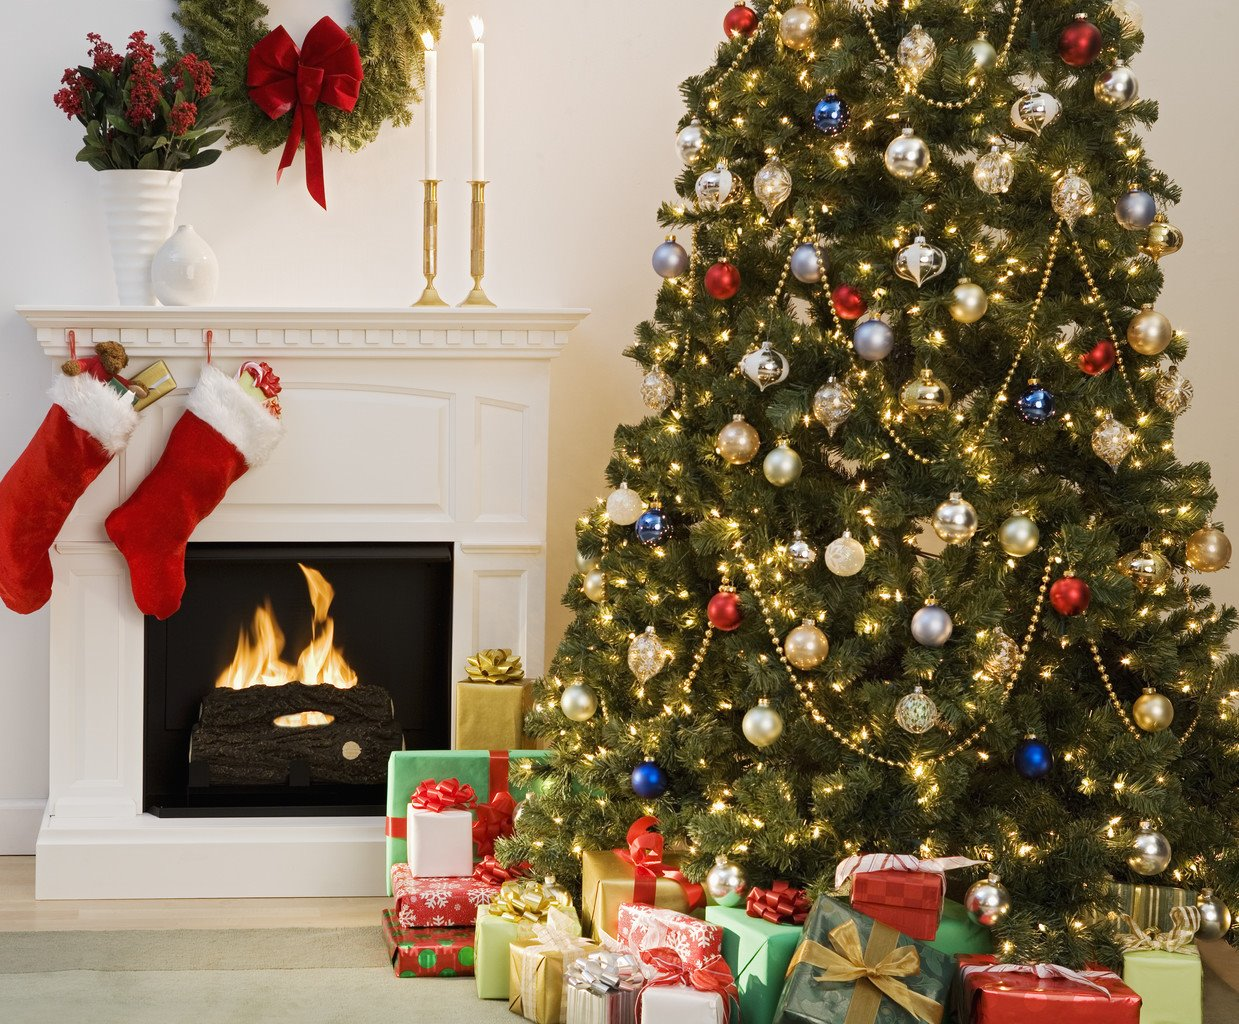 Attractive Cozy Living Room With Decorated Christmas Tree